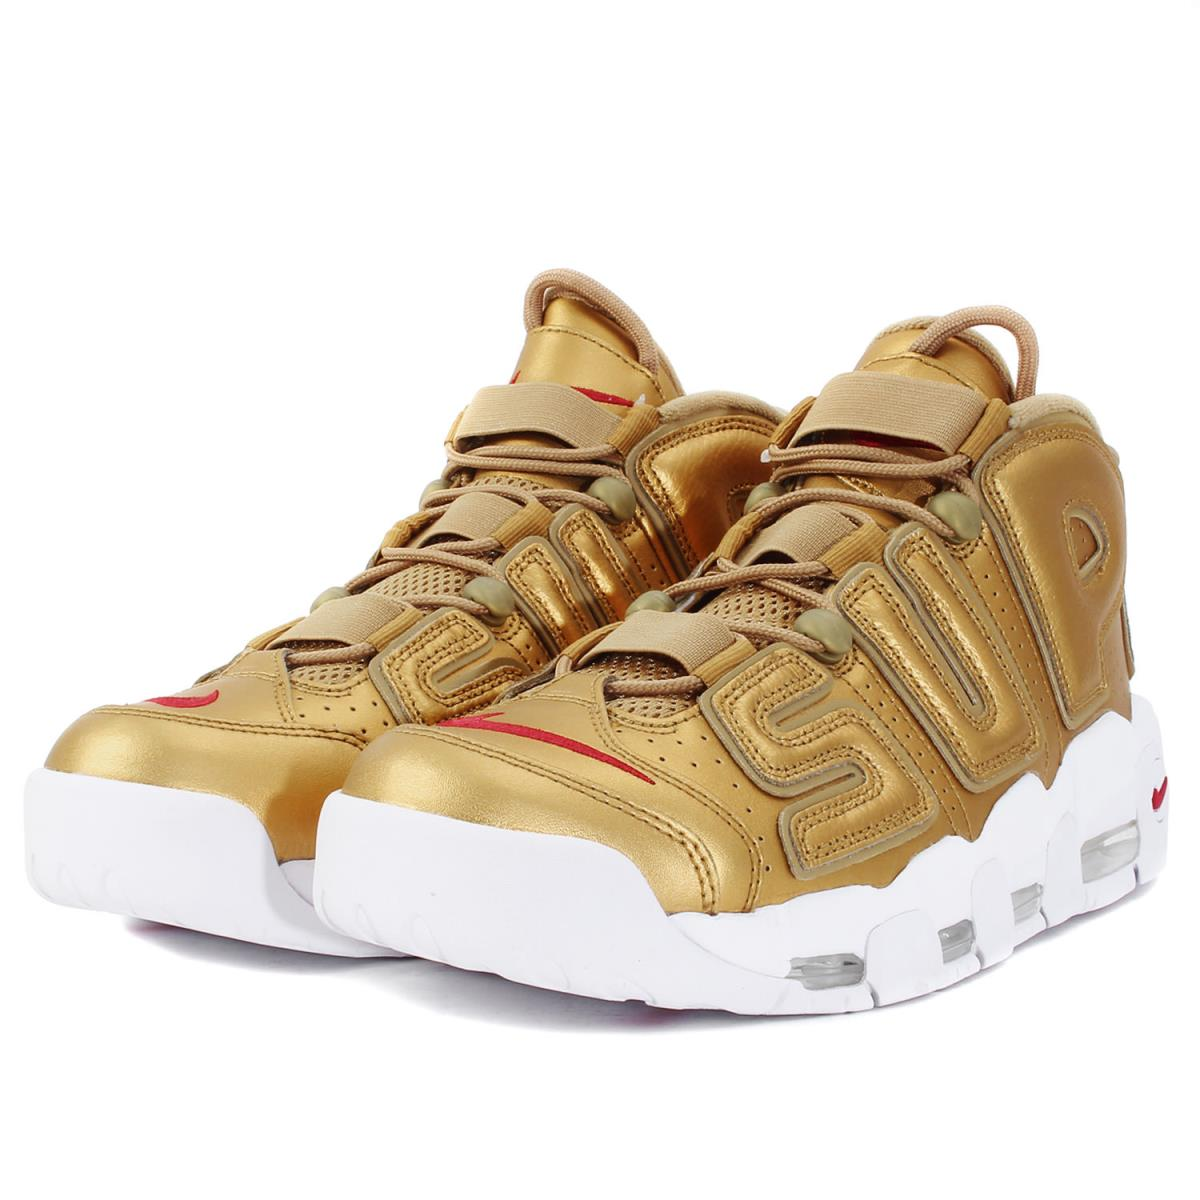 half off ad0ce 41326 Supreme (シュプリーム) 17SS X NIKE AIR MORE UPTEMPO (902,290-700) metallic gold  US10(28)